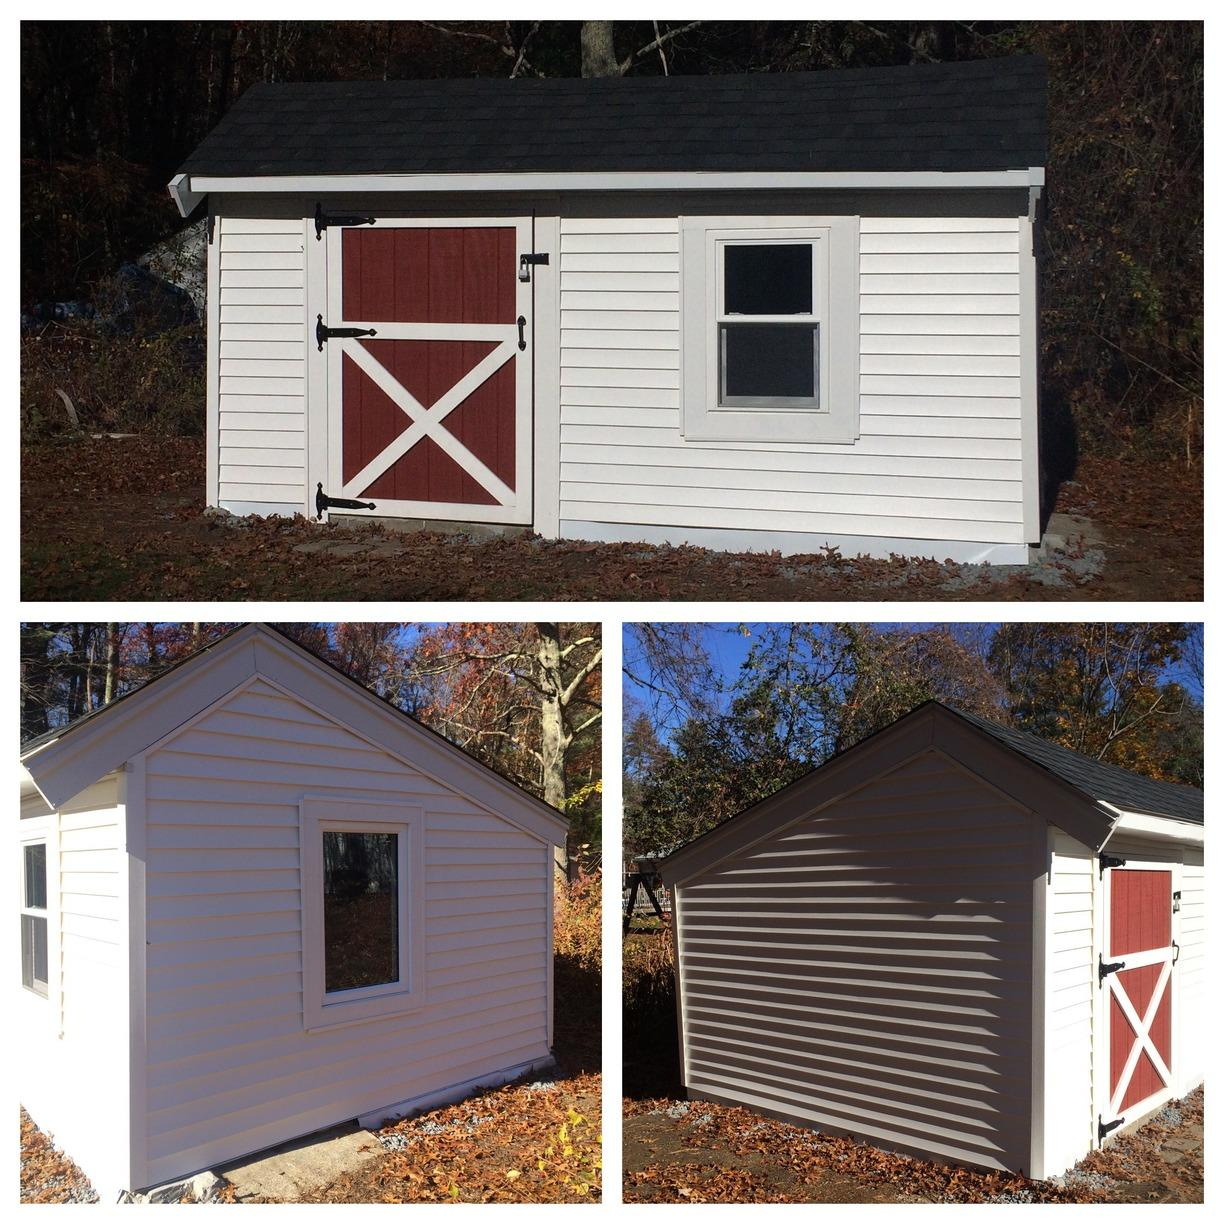 Shed Renovation: Roof, Window, Siding and Door Replacement- Needham, MA - After Photo